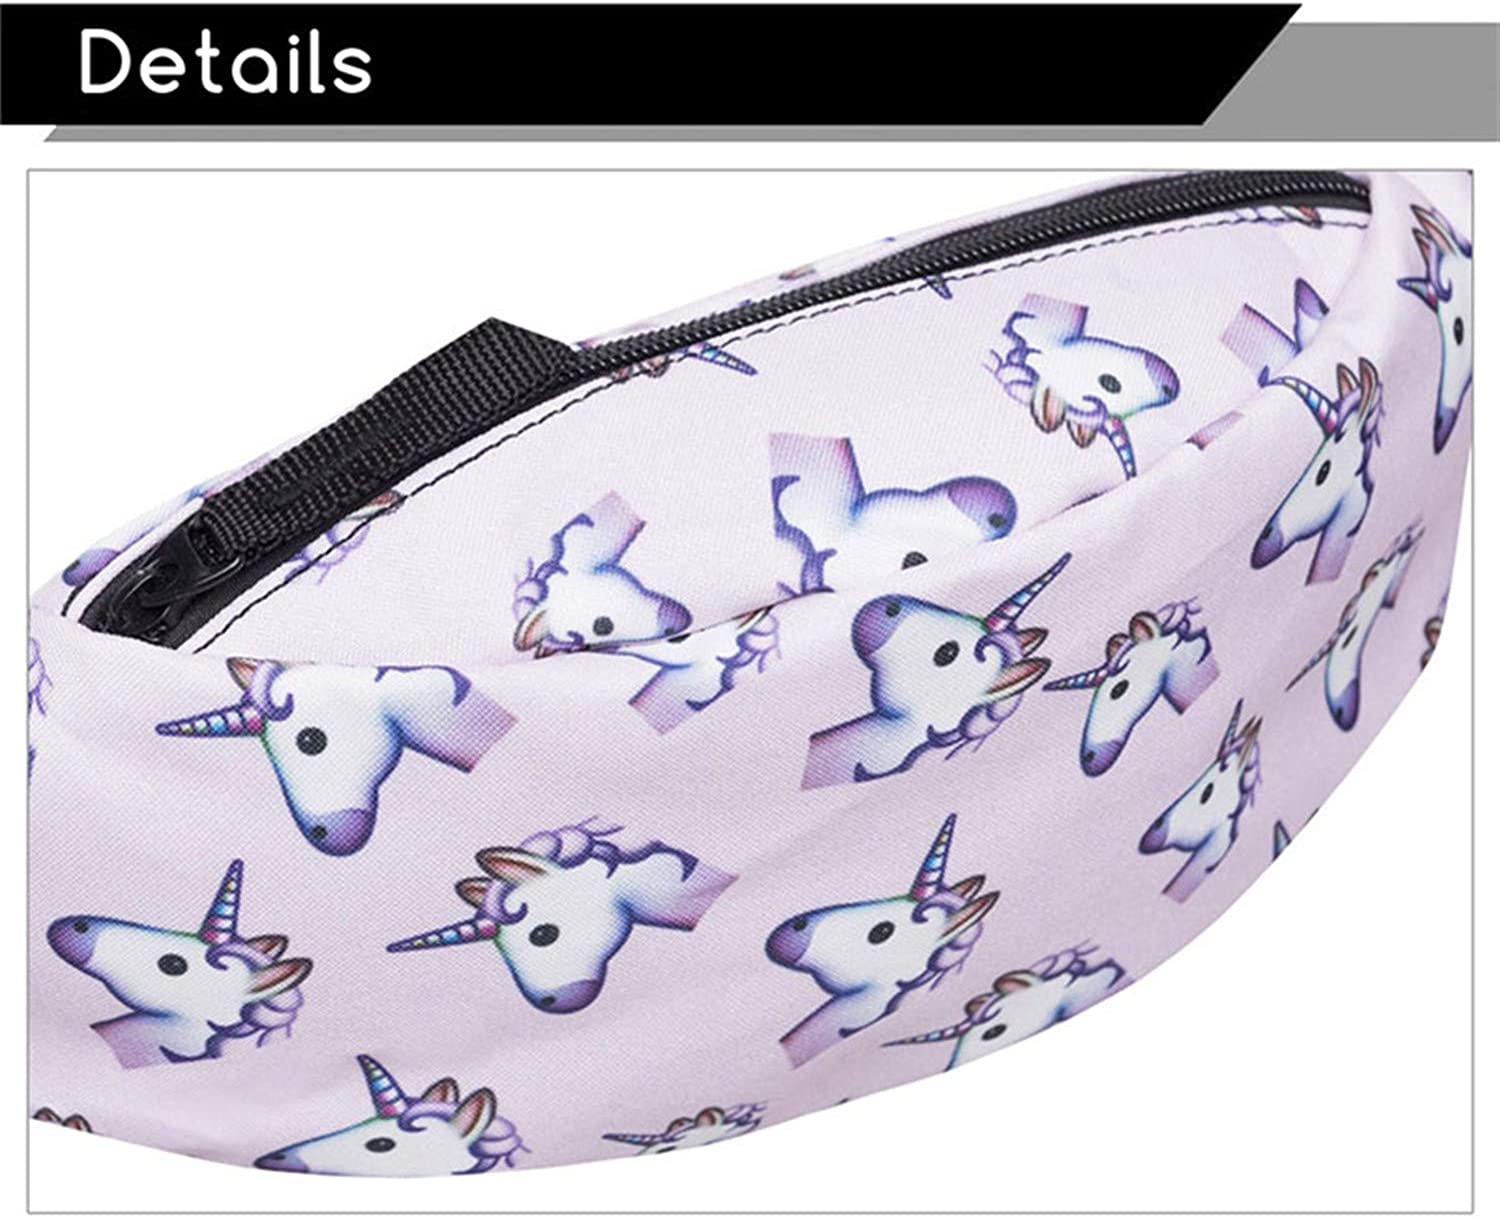 New Colorful Waist Bag For Men Packs Style Belt Bag Unicorn Women Waist Pack